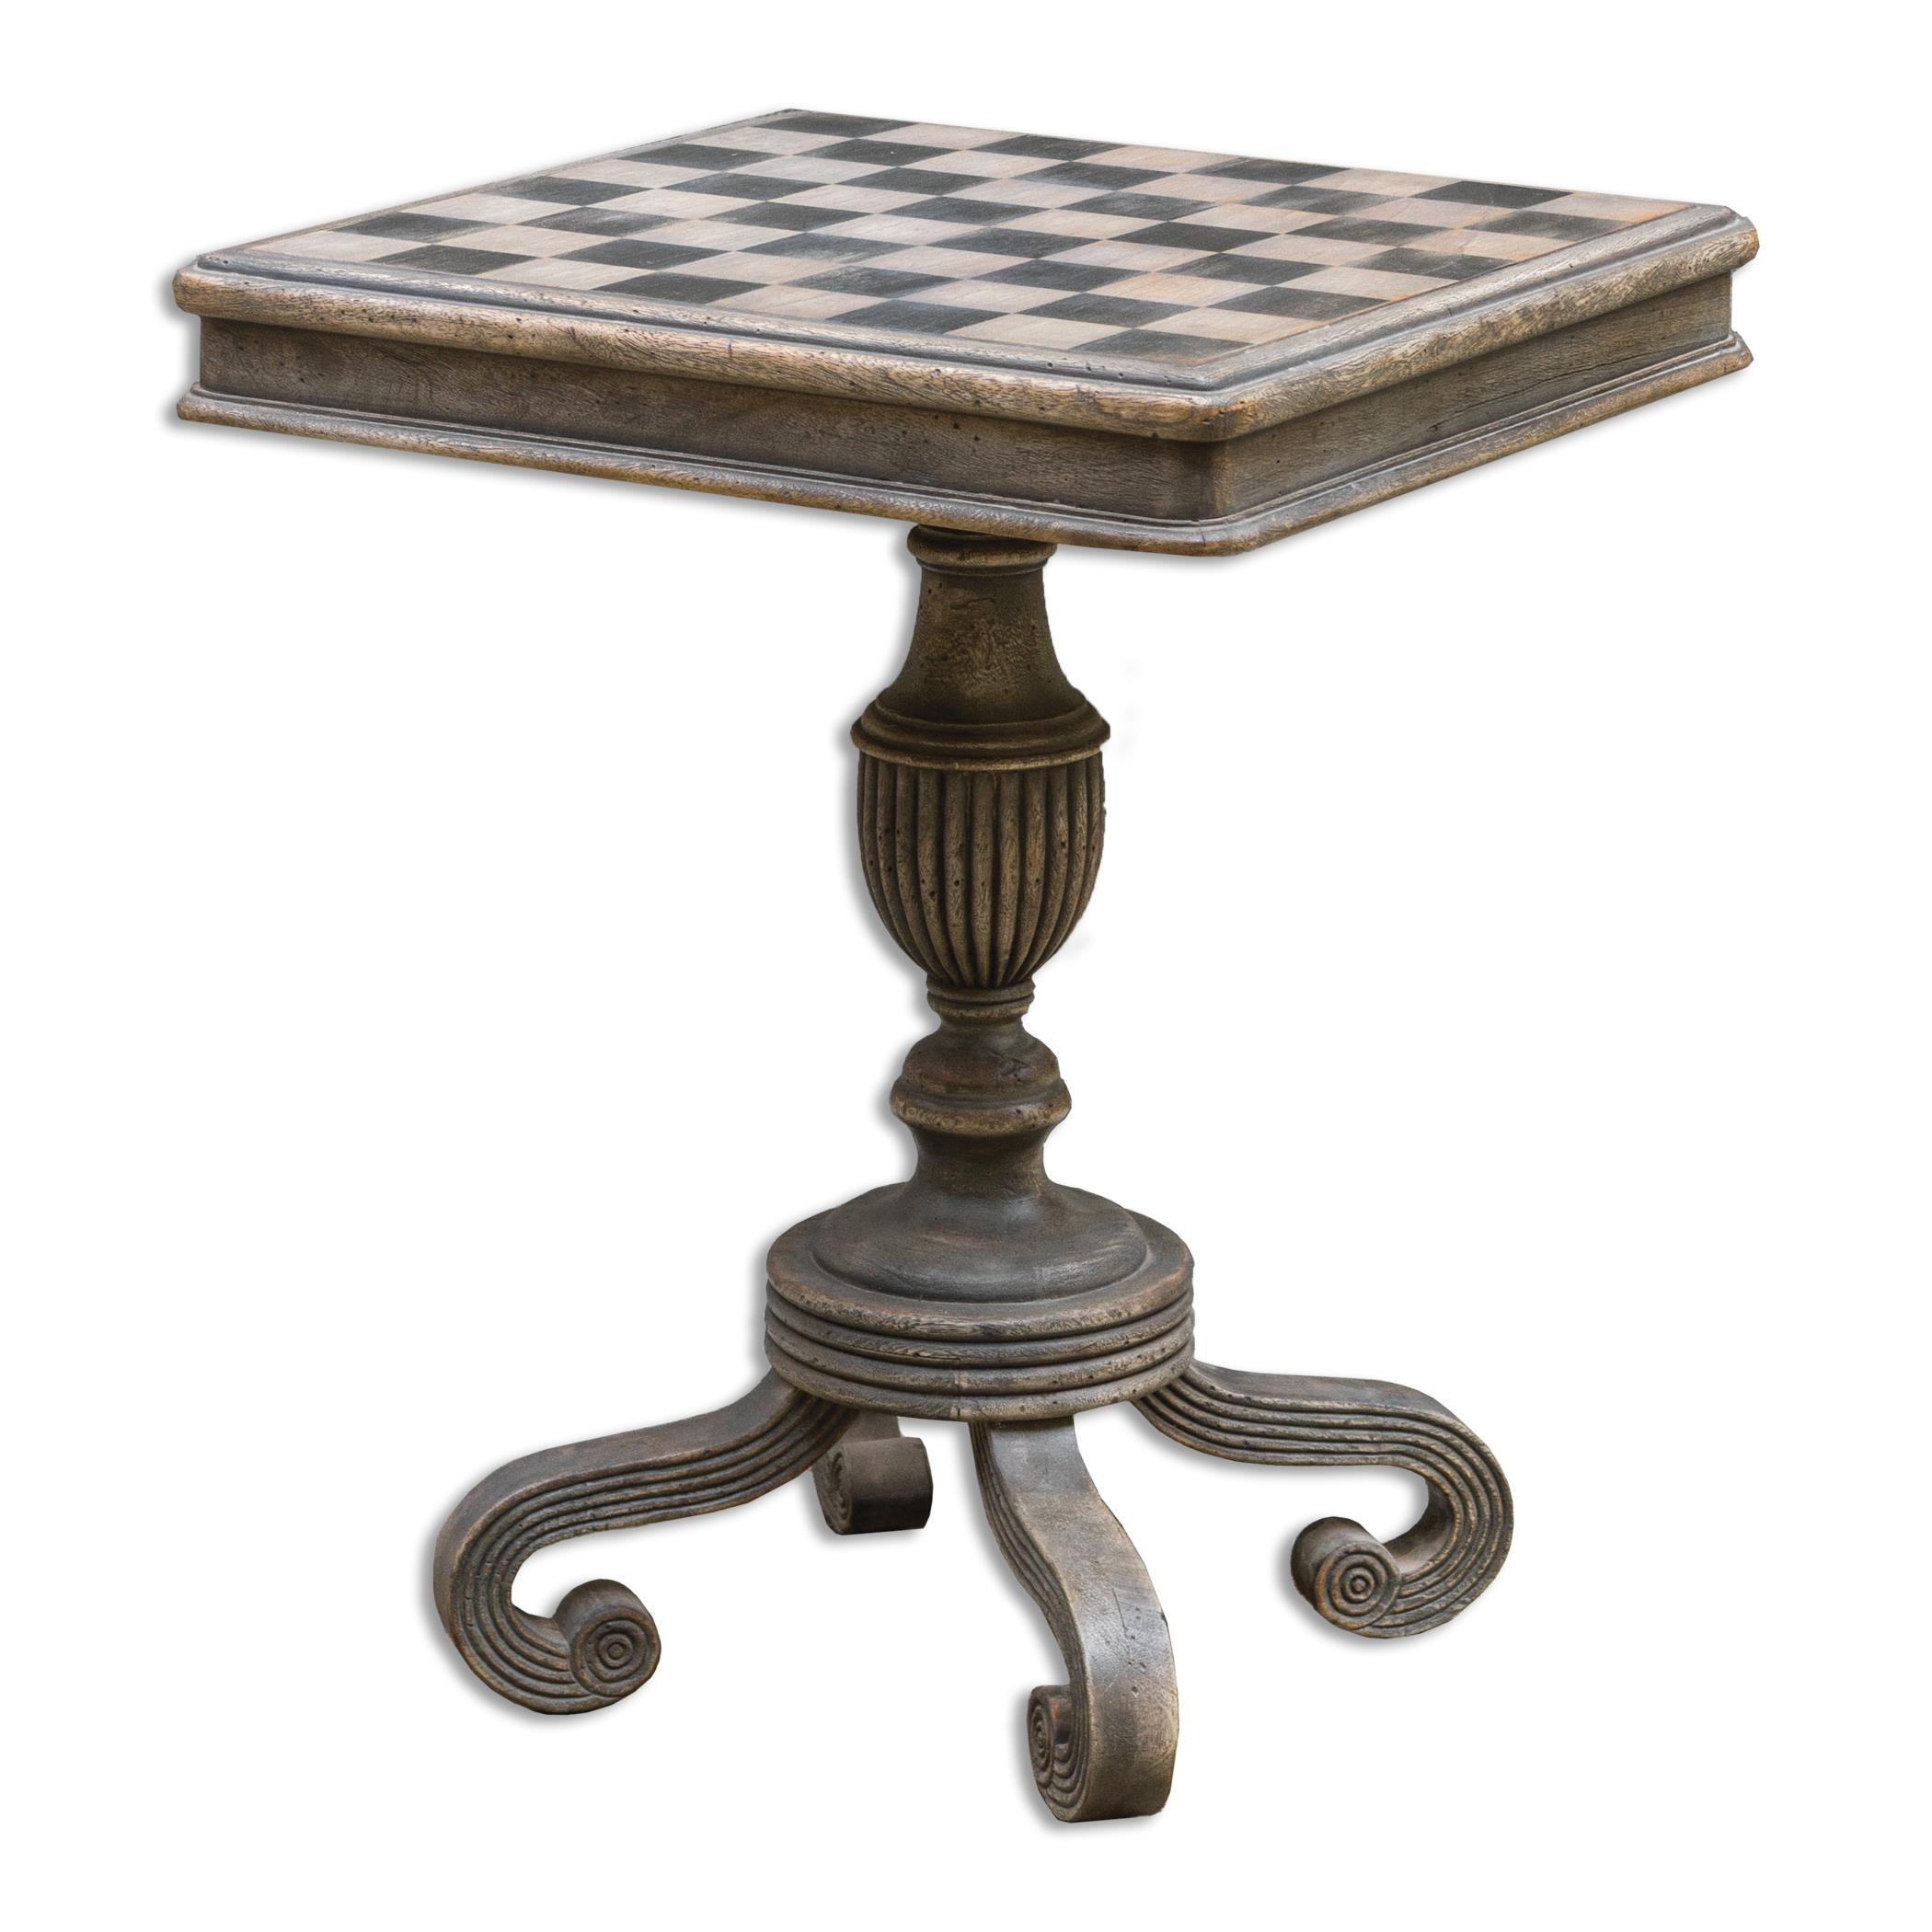 Uttermost Accent Furniture Gwennan Wooden Game Table - Item Number: 25670